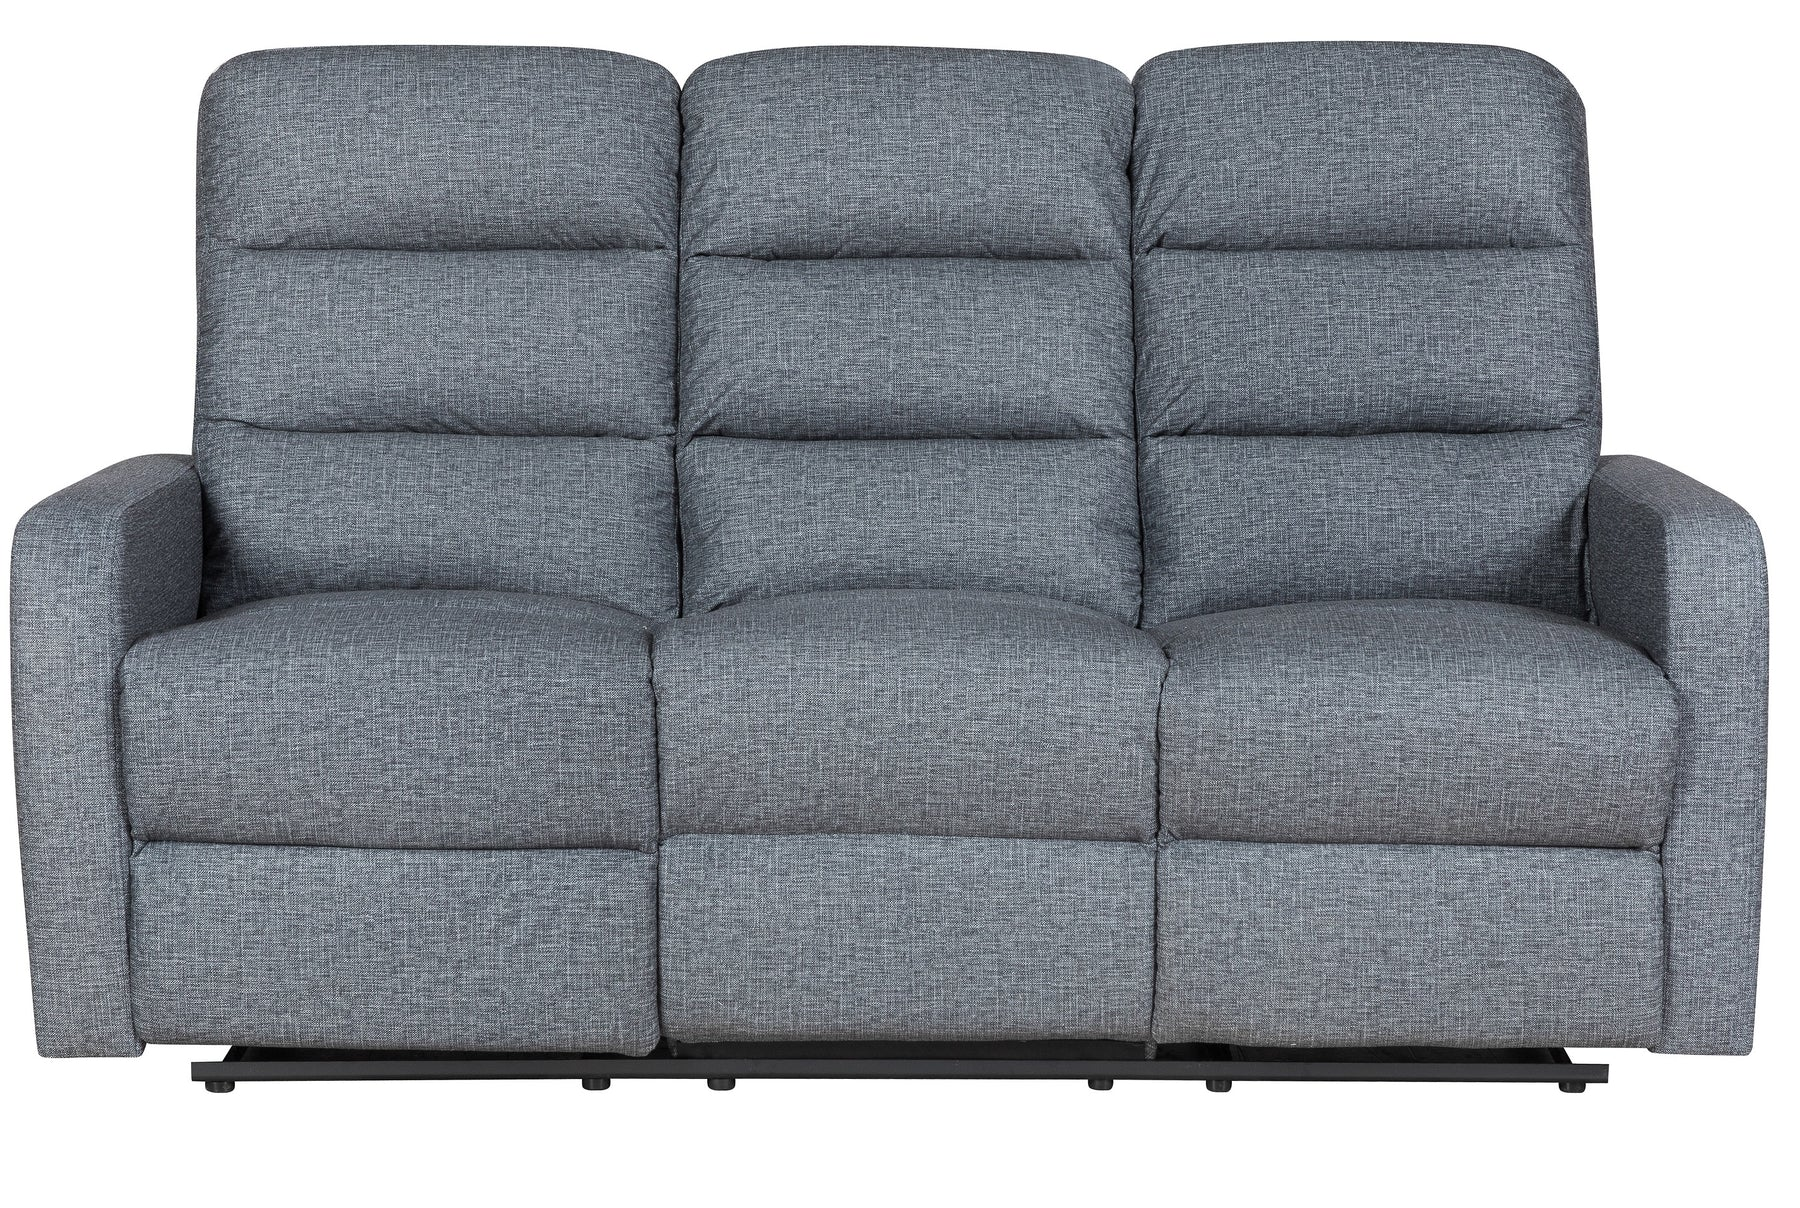 Chadwick 3 Seater With Electric Recliners